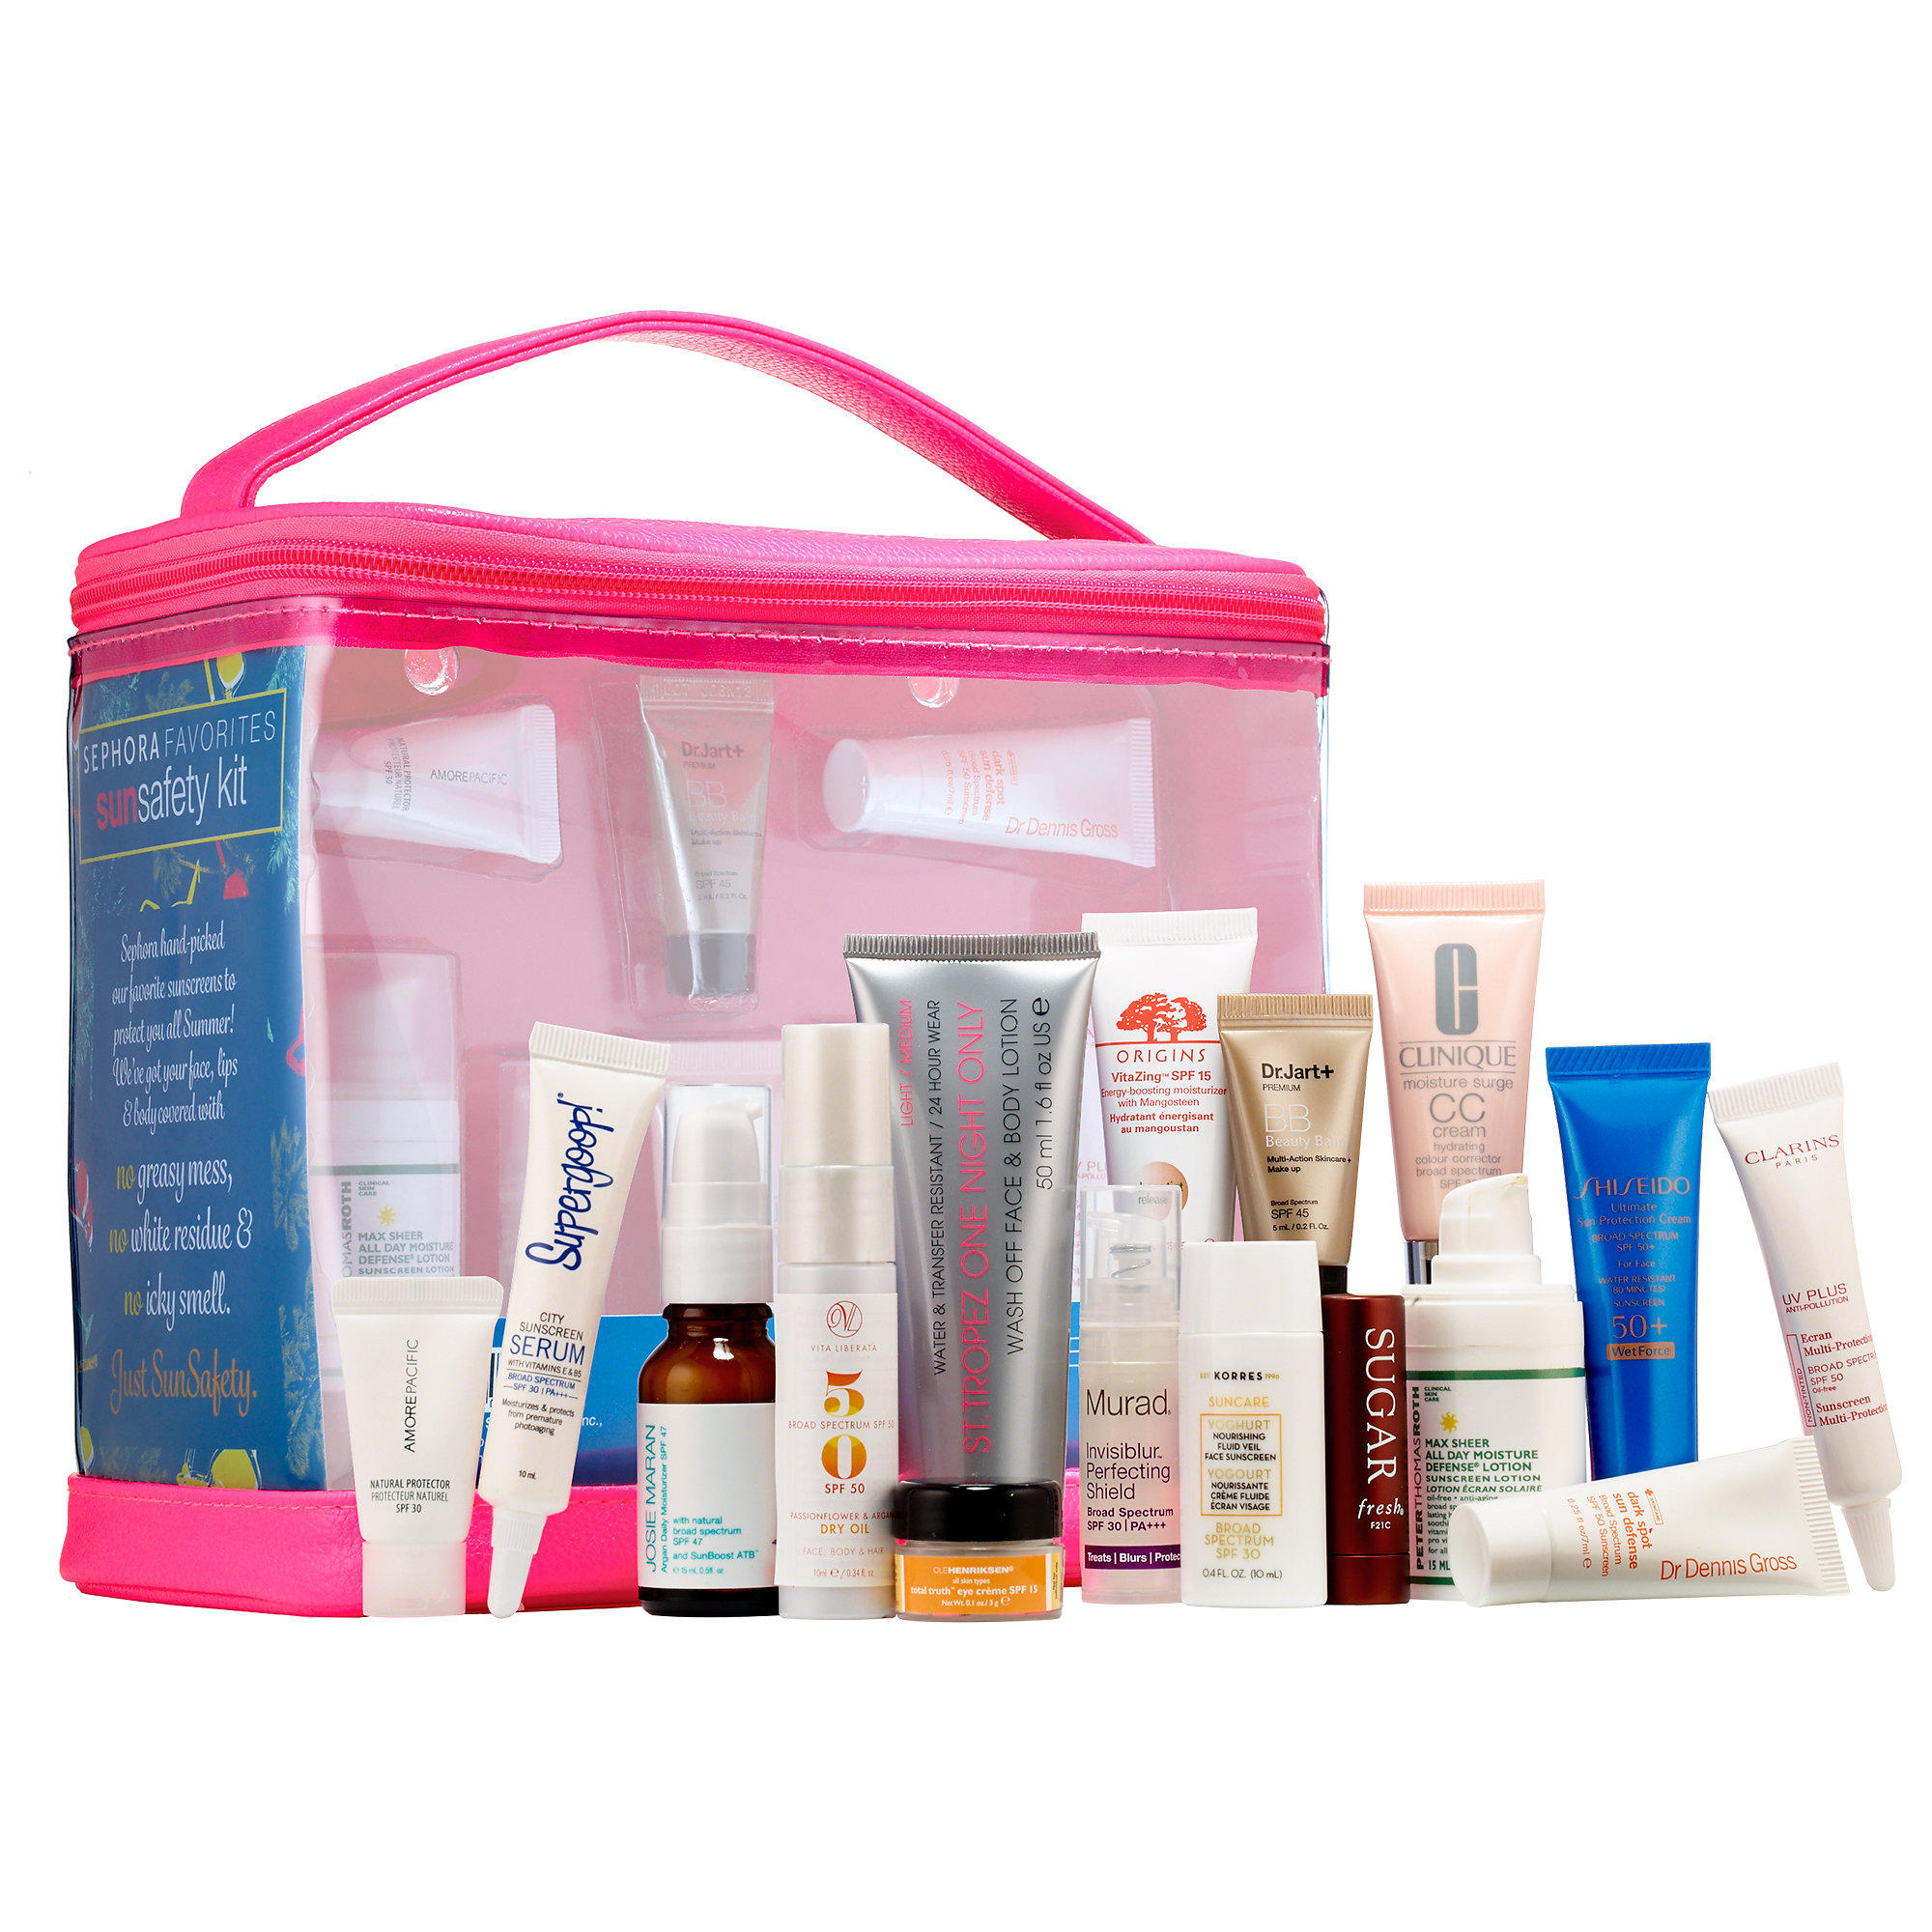 New Release Sephora will launched New Sun Safety Kit